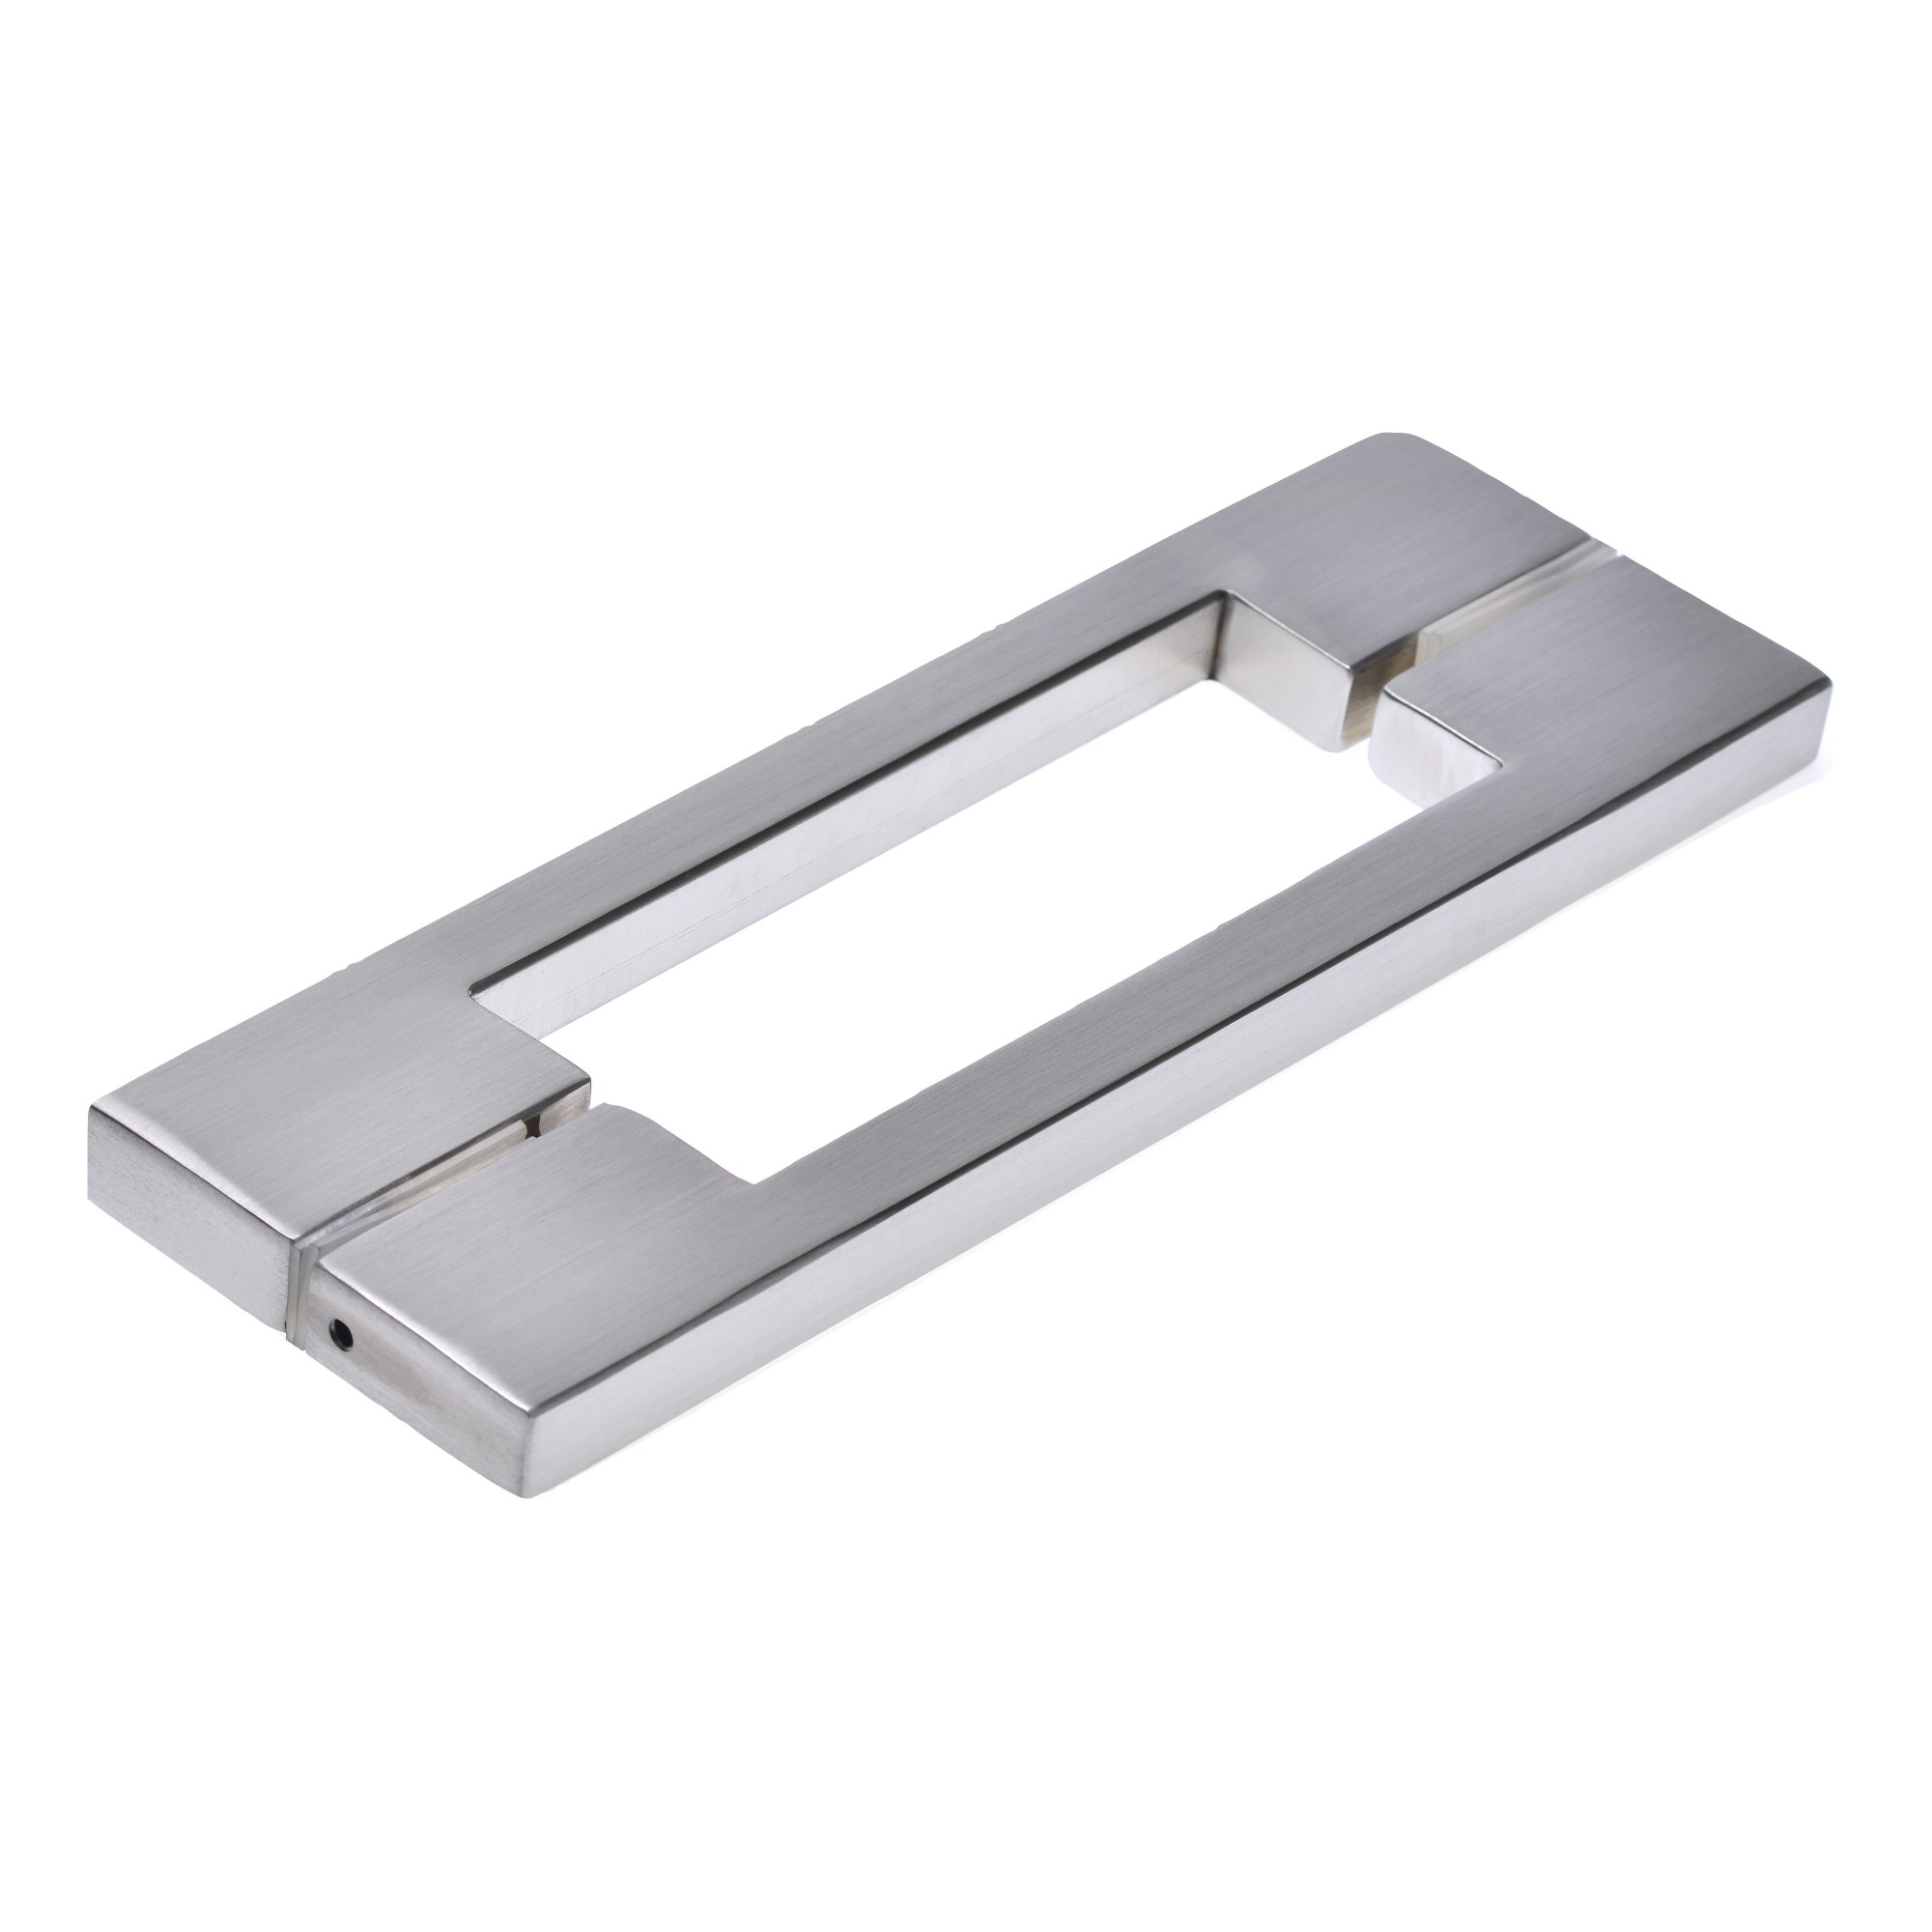 Puxador de Aco Inox Escovado 800 mm - Munique Hastvel